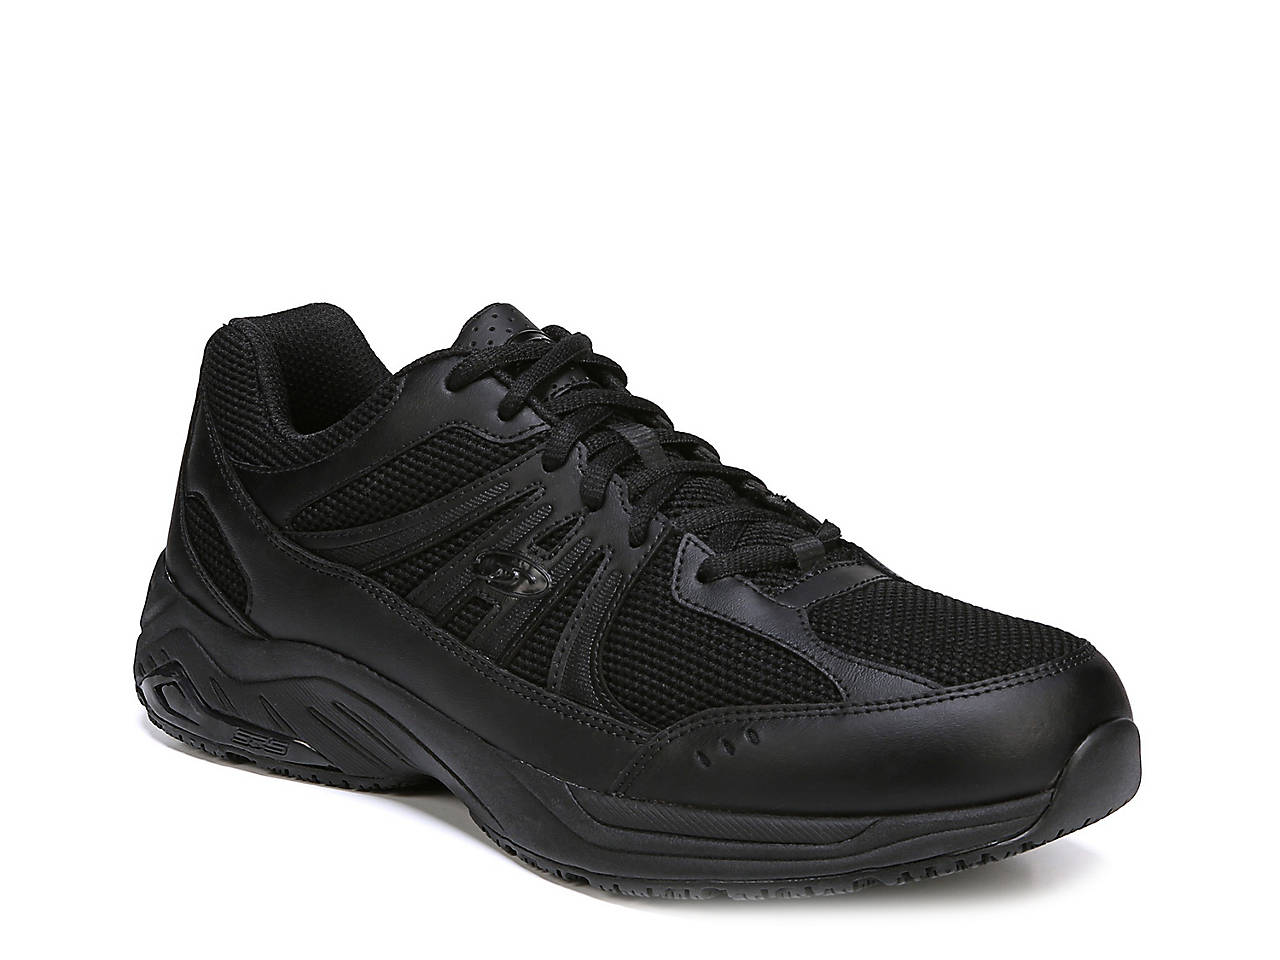 594c1ccf9aab Dr. Scholl s Monster Work Shoe Men s Shoes